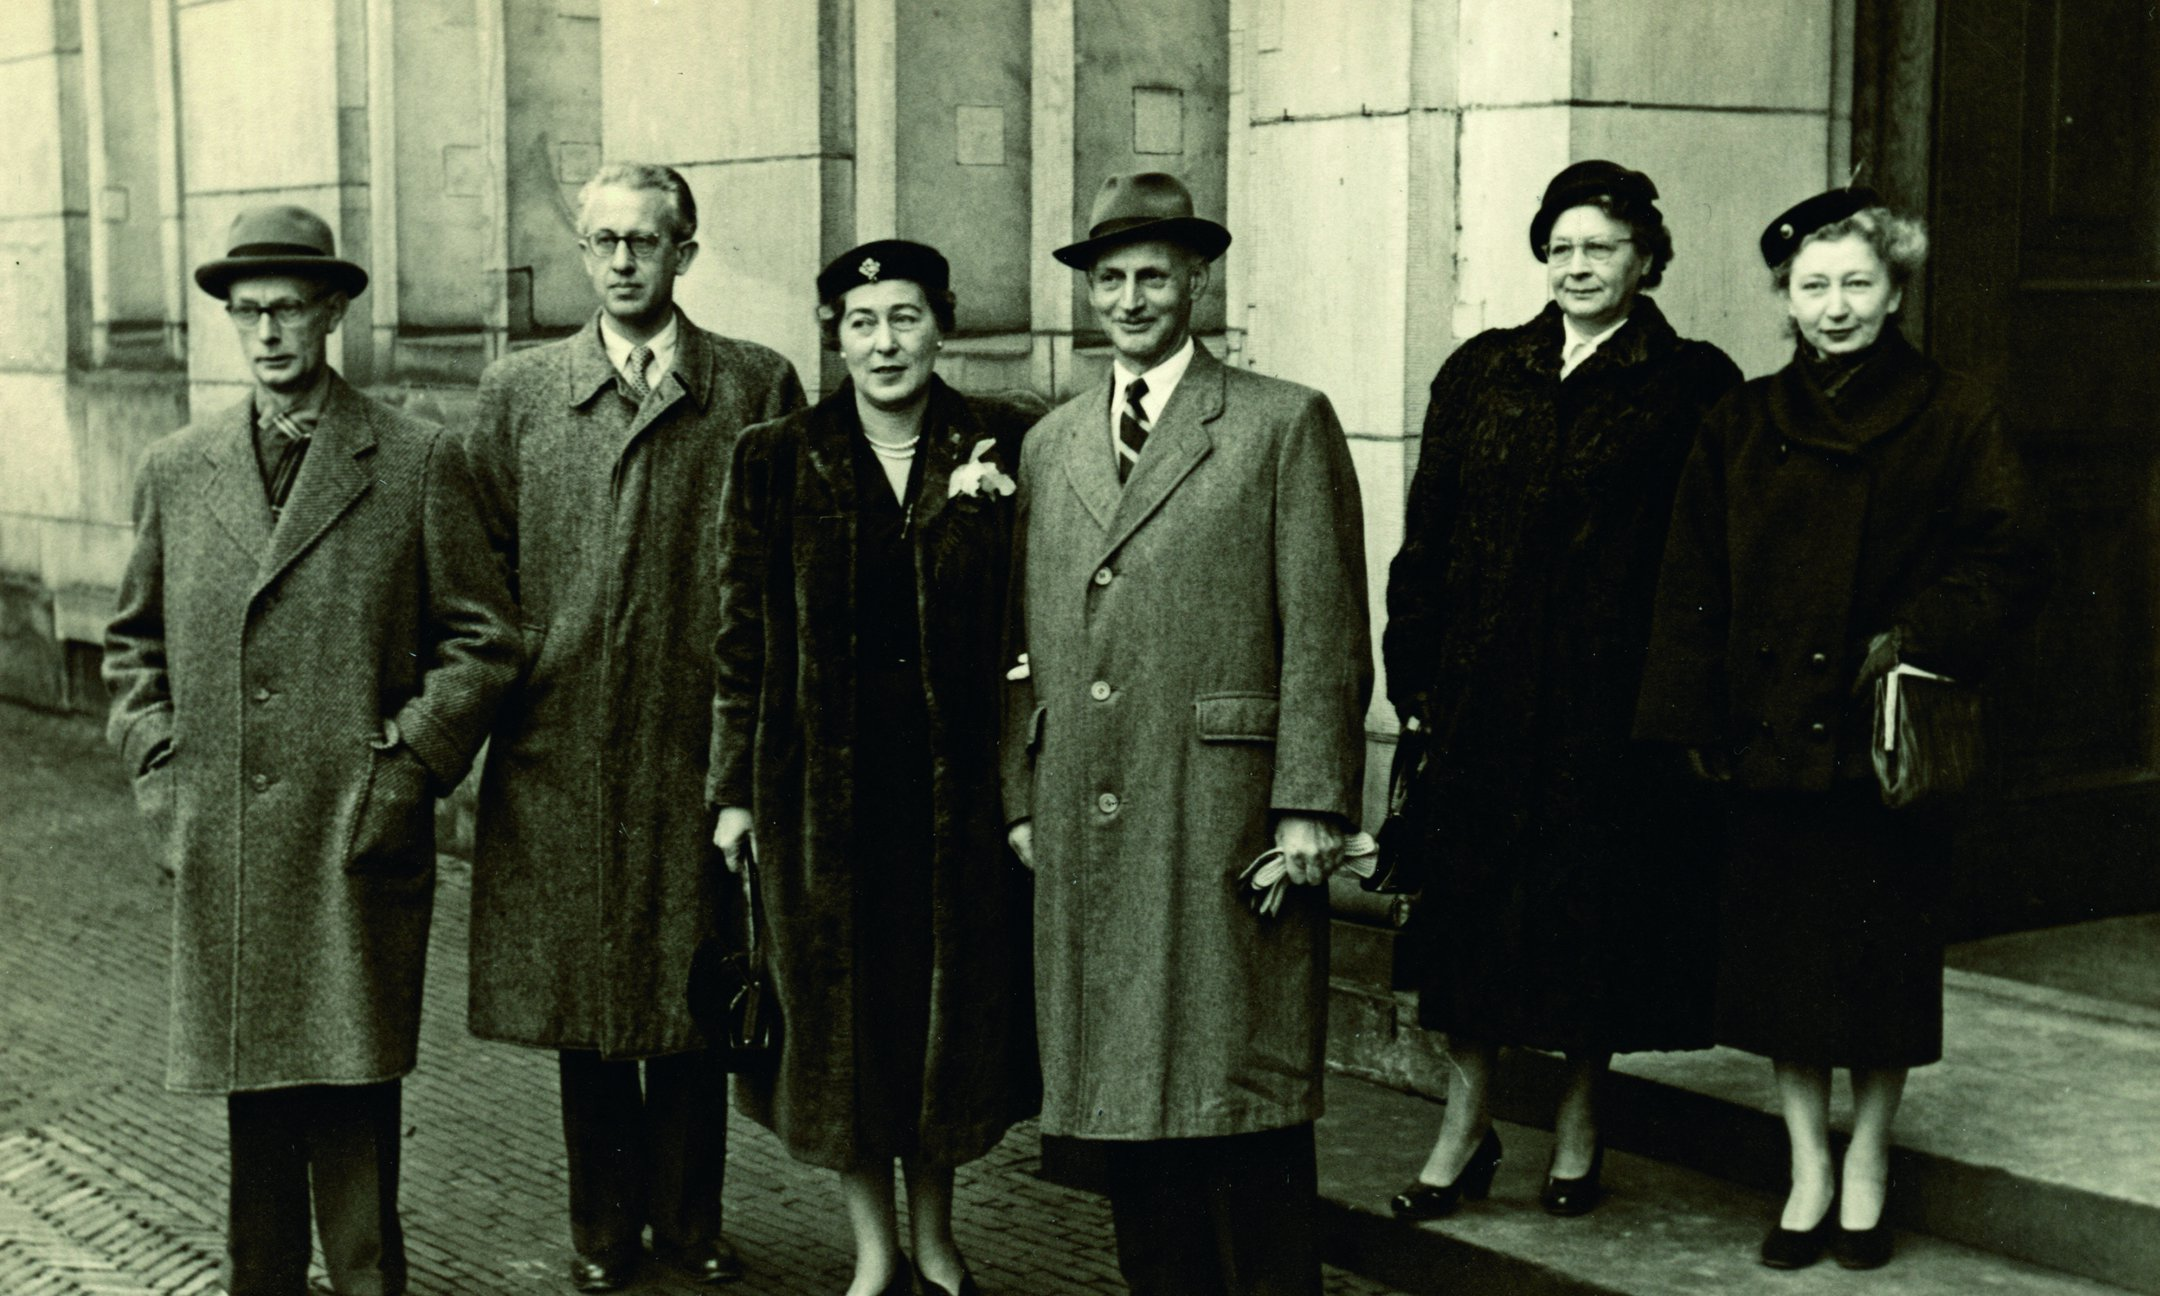 Otto Frank and Fritzi Frank on their wedding day, 10 November 1953. From left to right: Johannes Kleiman, Jan Gies, Fritzi Frank, Otto Frank, Johanna Kleiman, and Miep Gies.